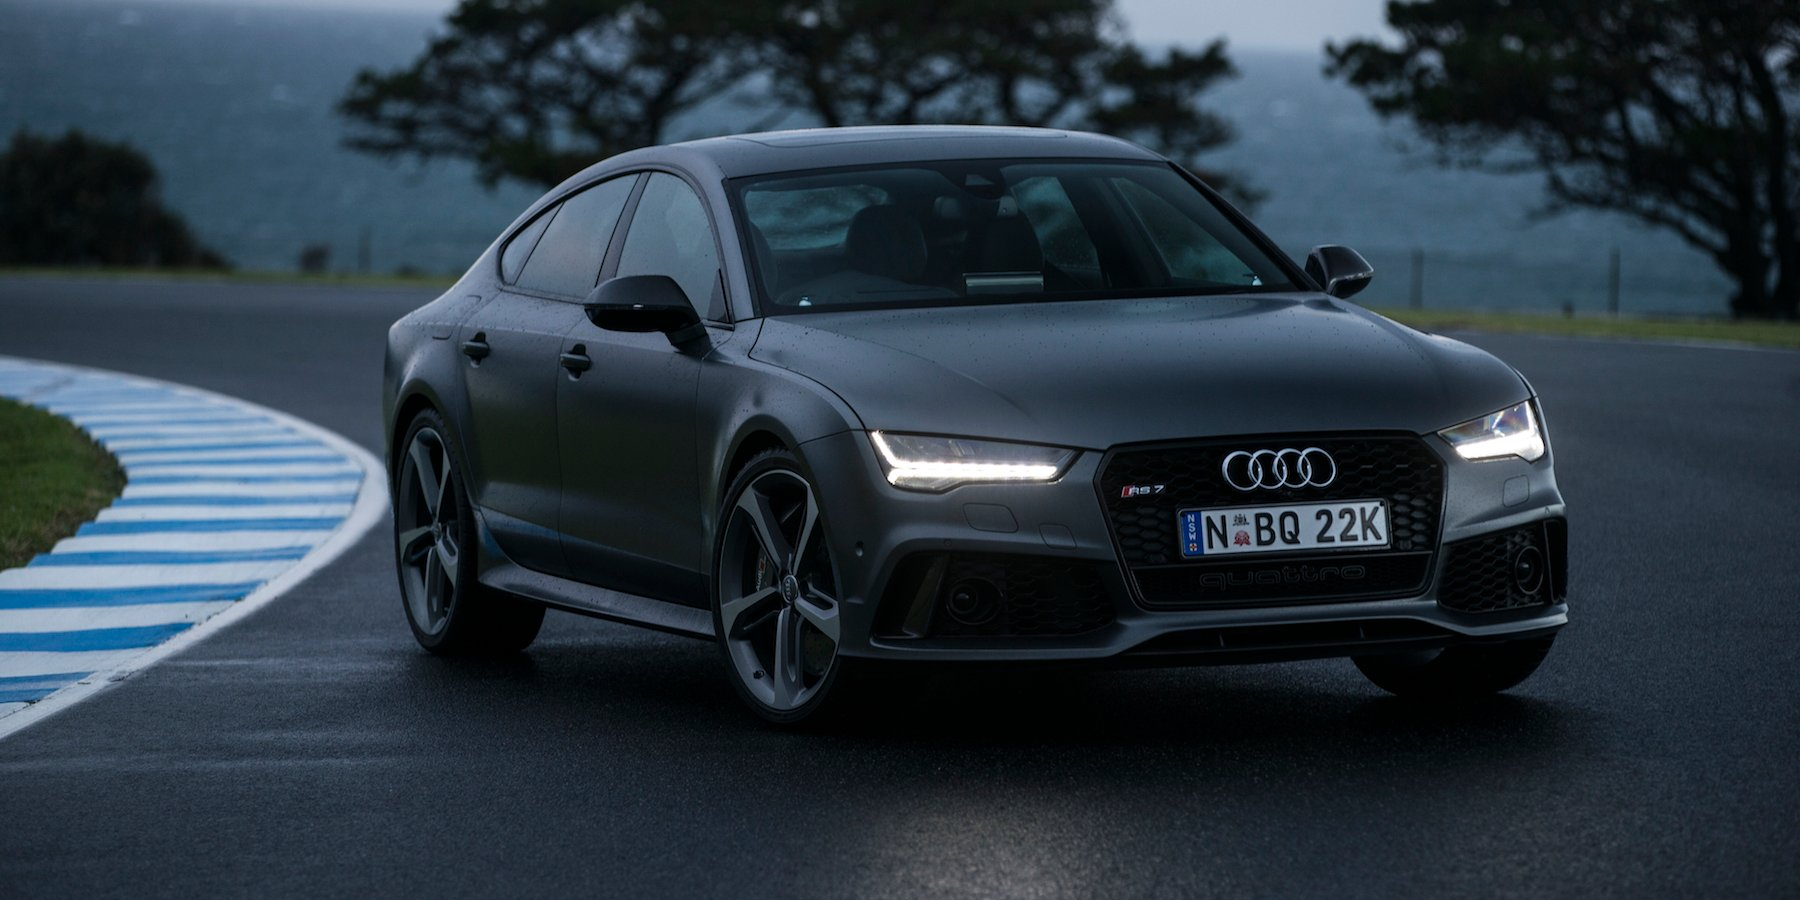 2015 Audi Rs7 Sportback Review Caradvice